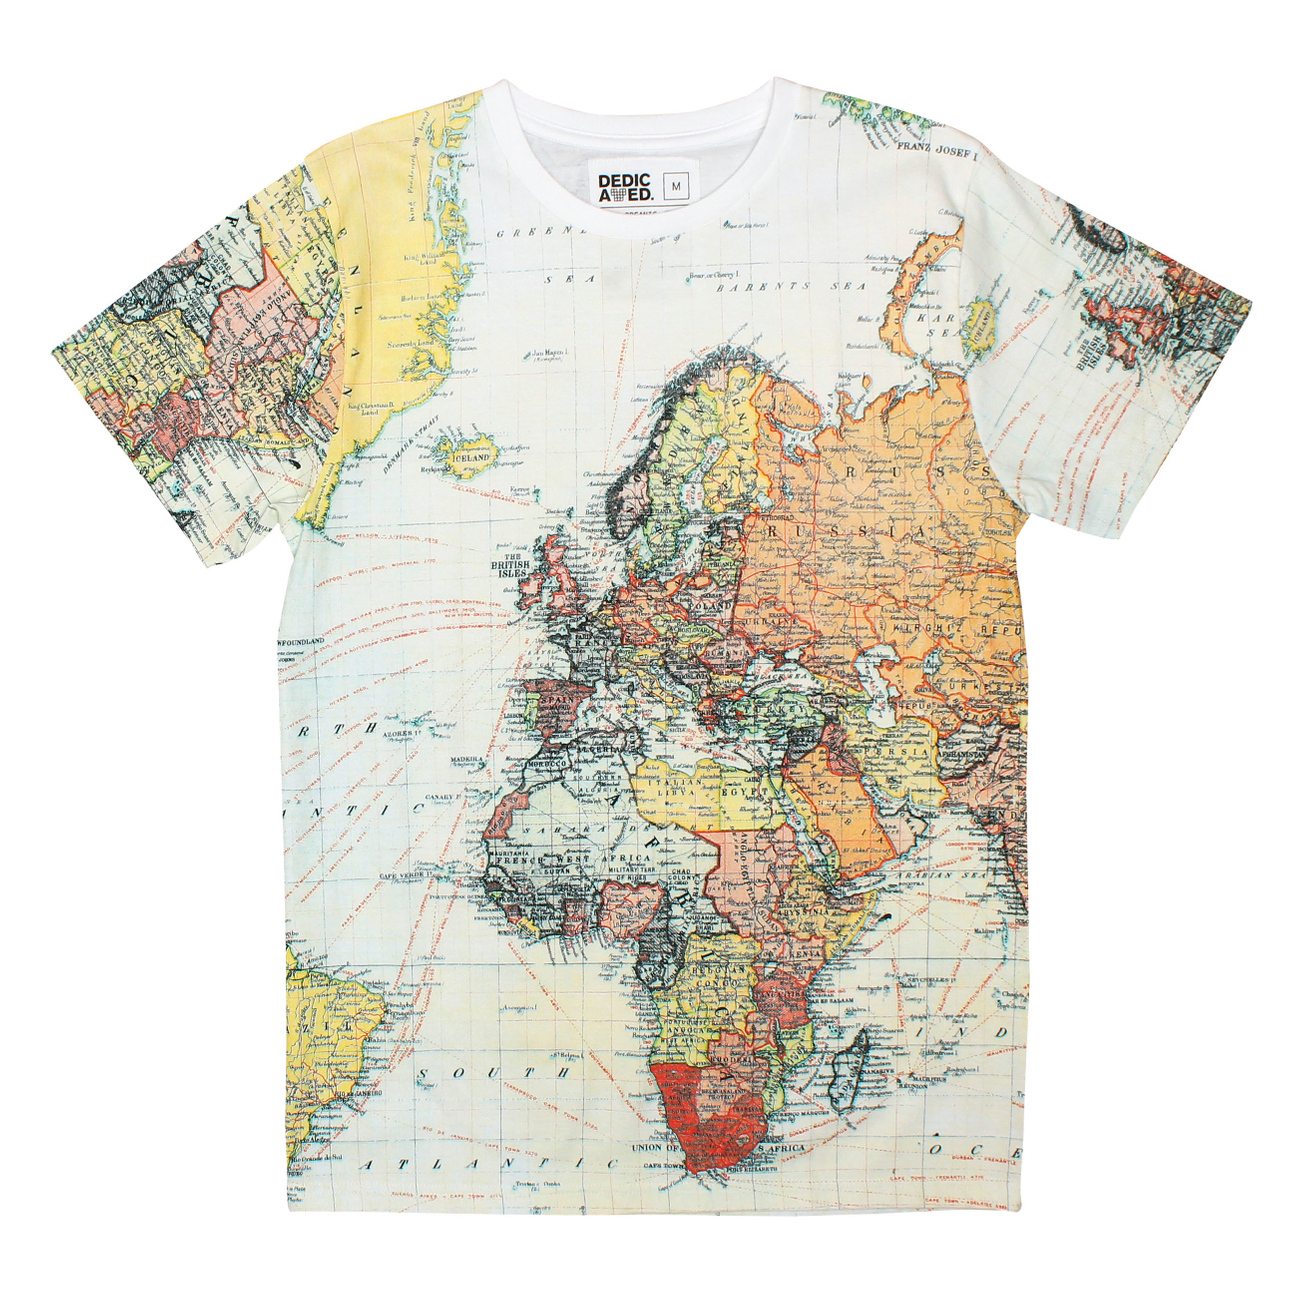 812fd9adf2 Dedicated T shirt Maps - Tshirt Store Online